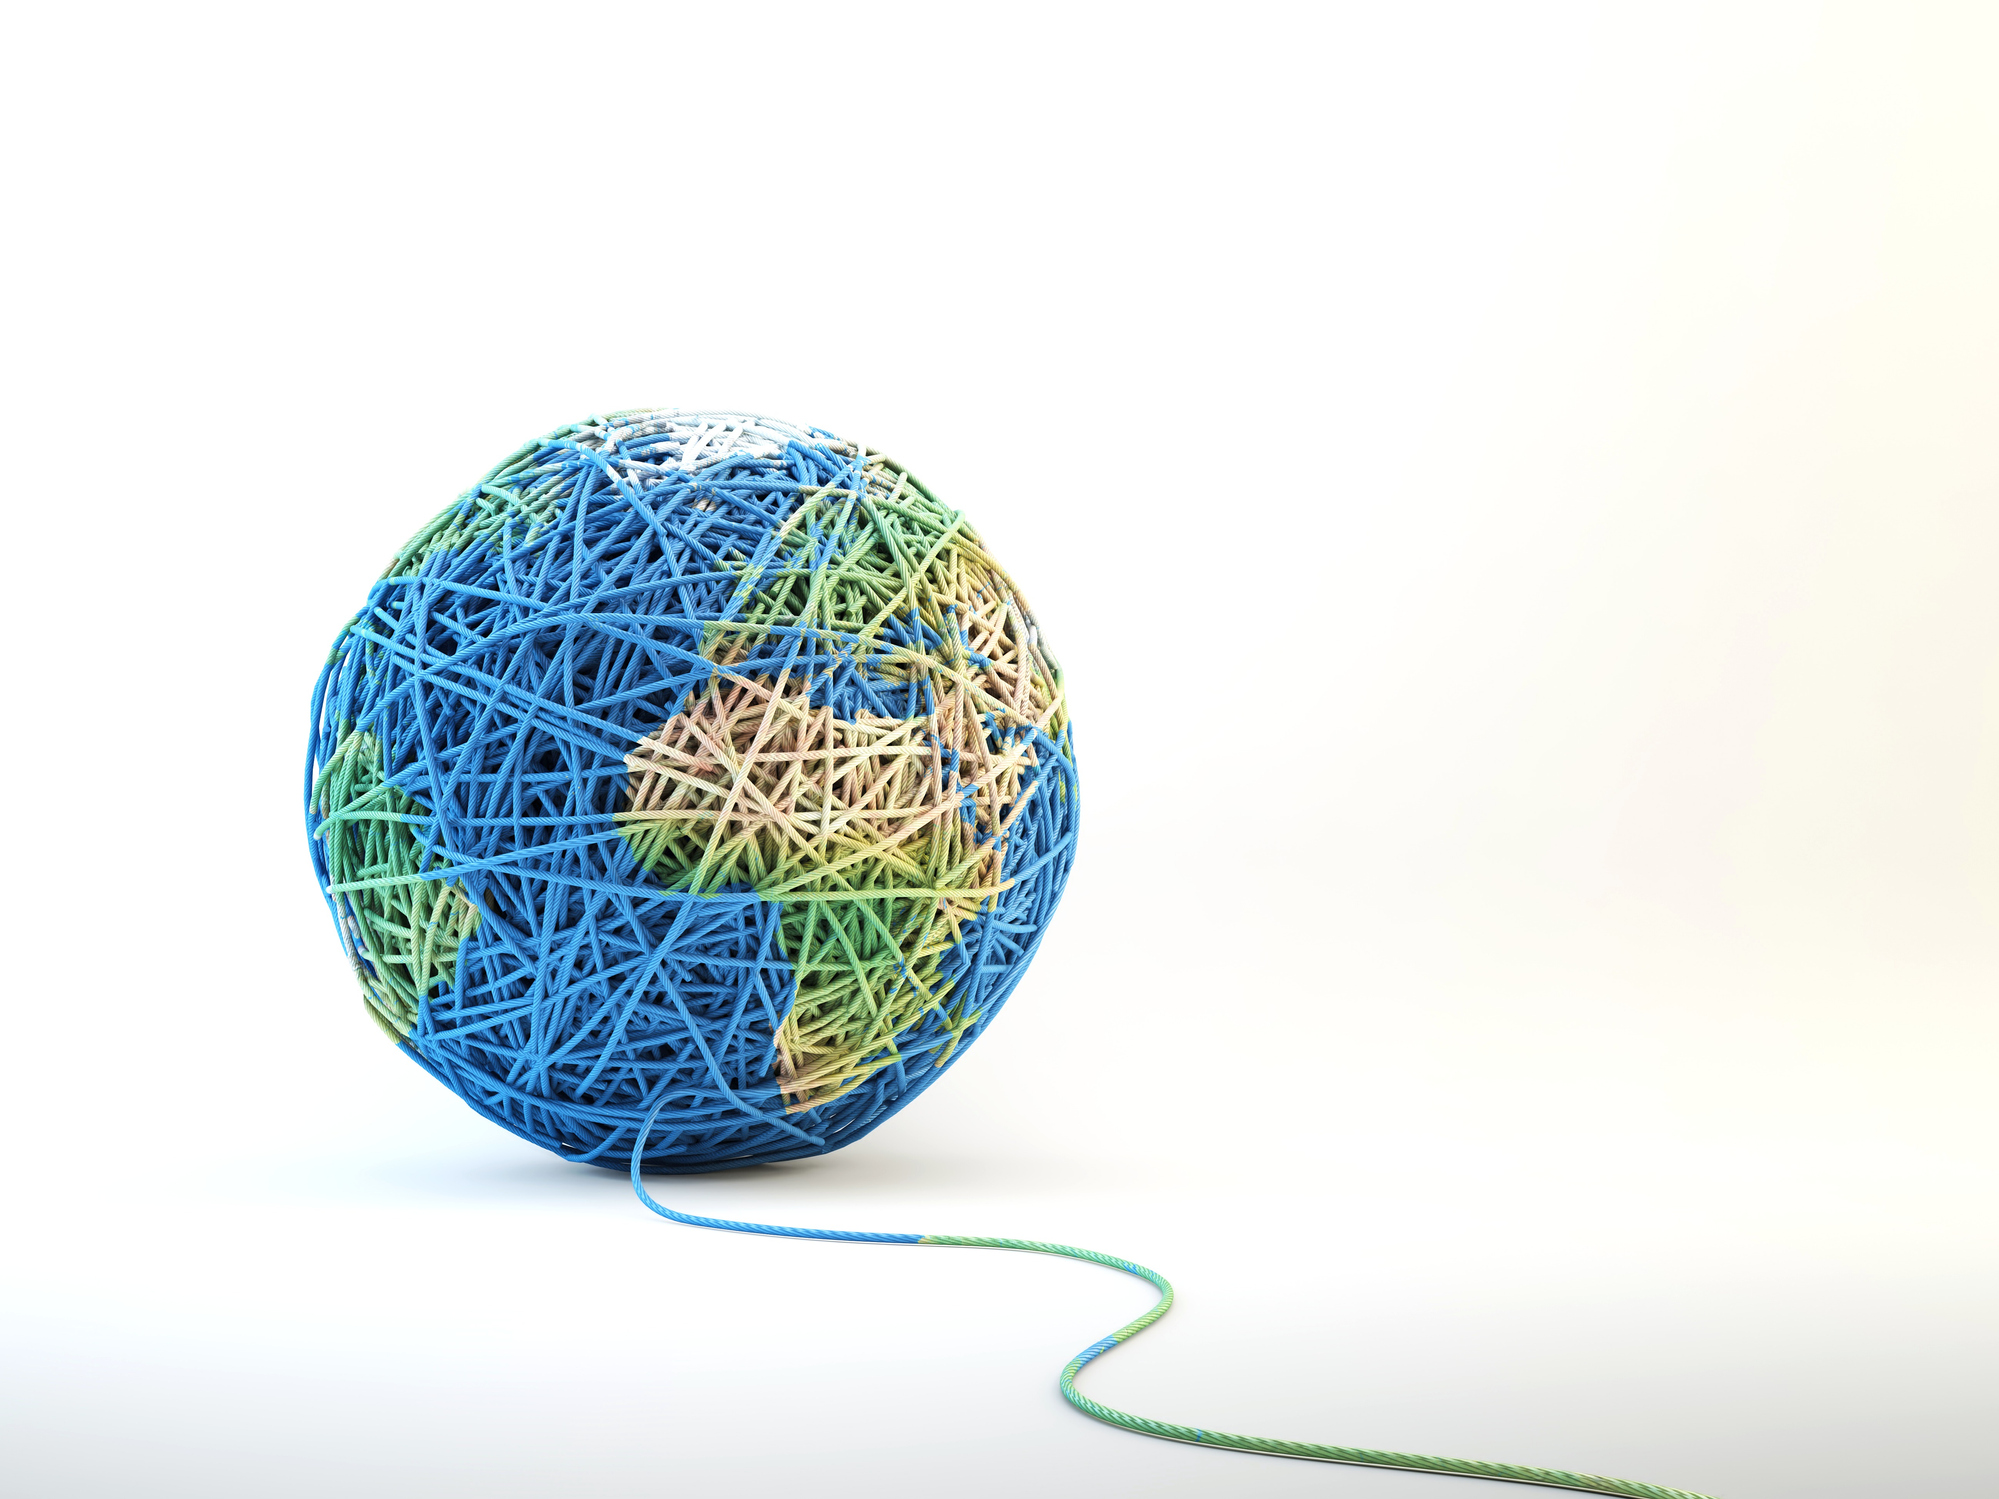 Globe made from ball of string, computer artwork.